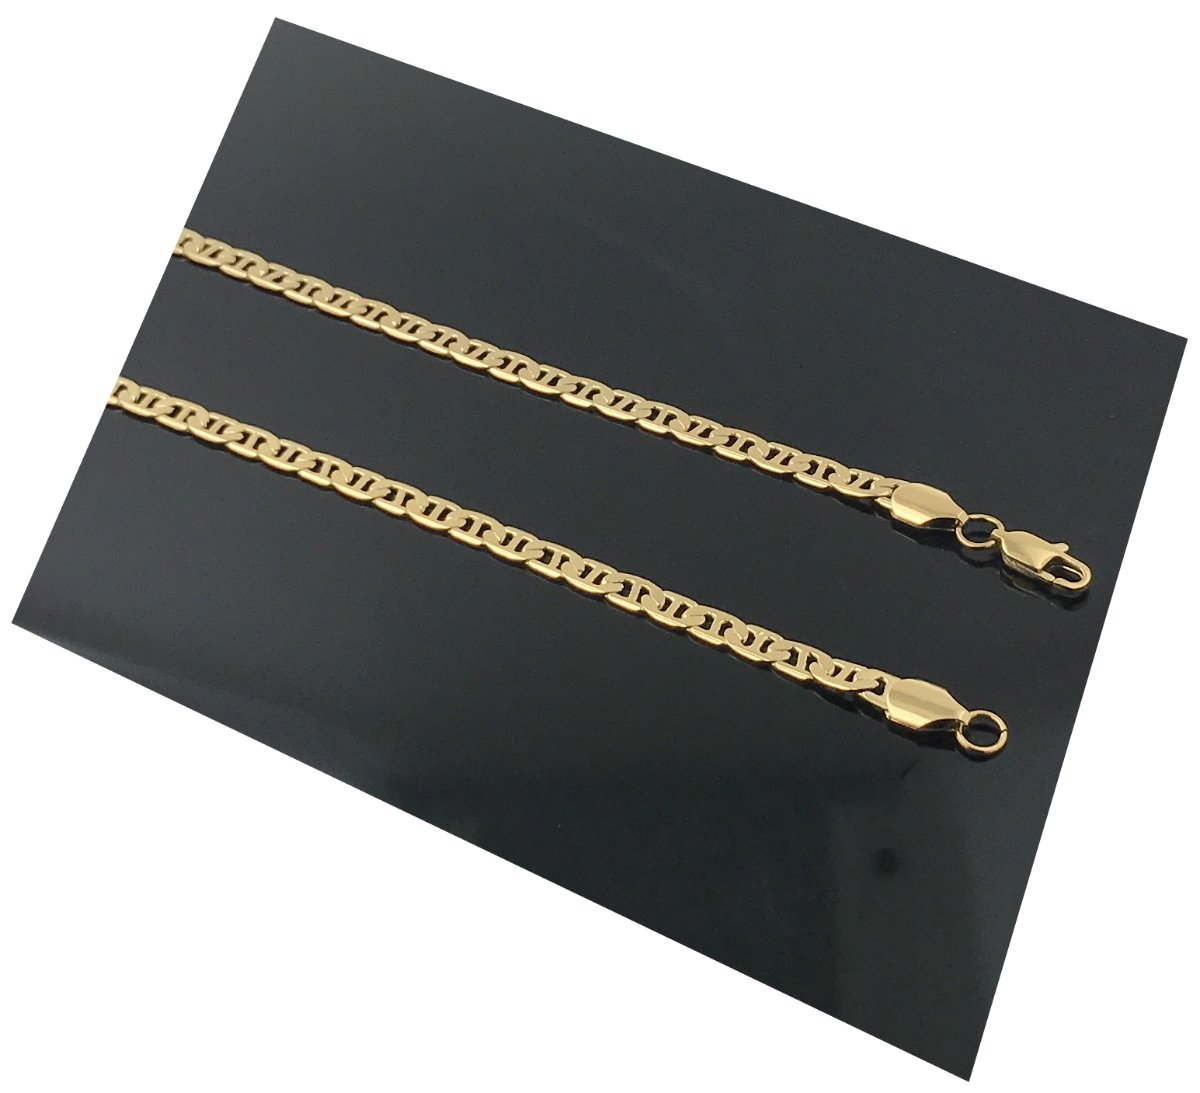 Gold chain necklace 5MM 18K Diamond cut Smooth Marina Chain with a Warrantied, USA made! (22)